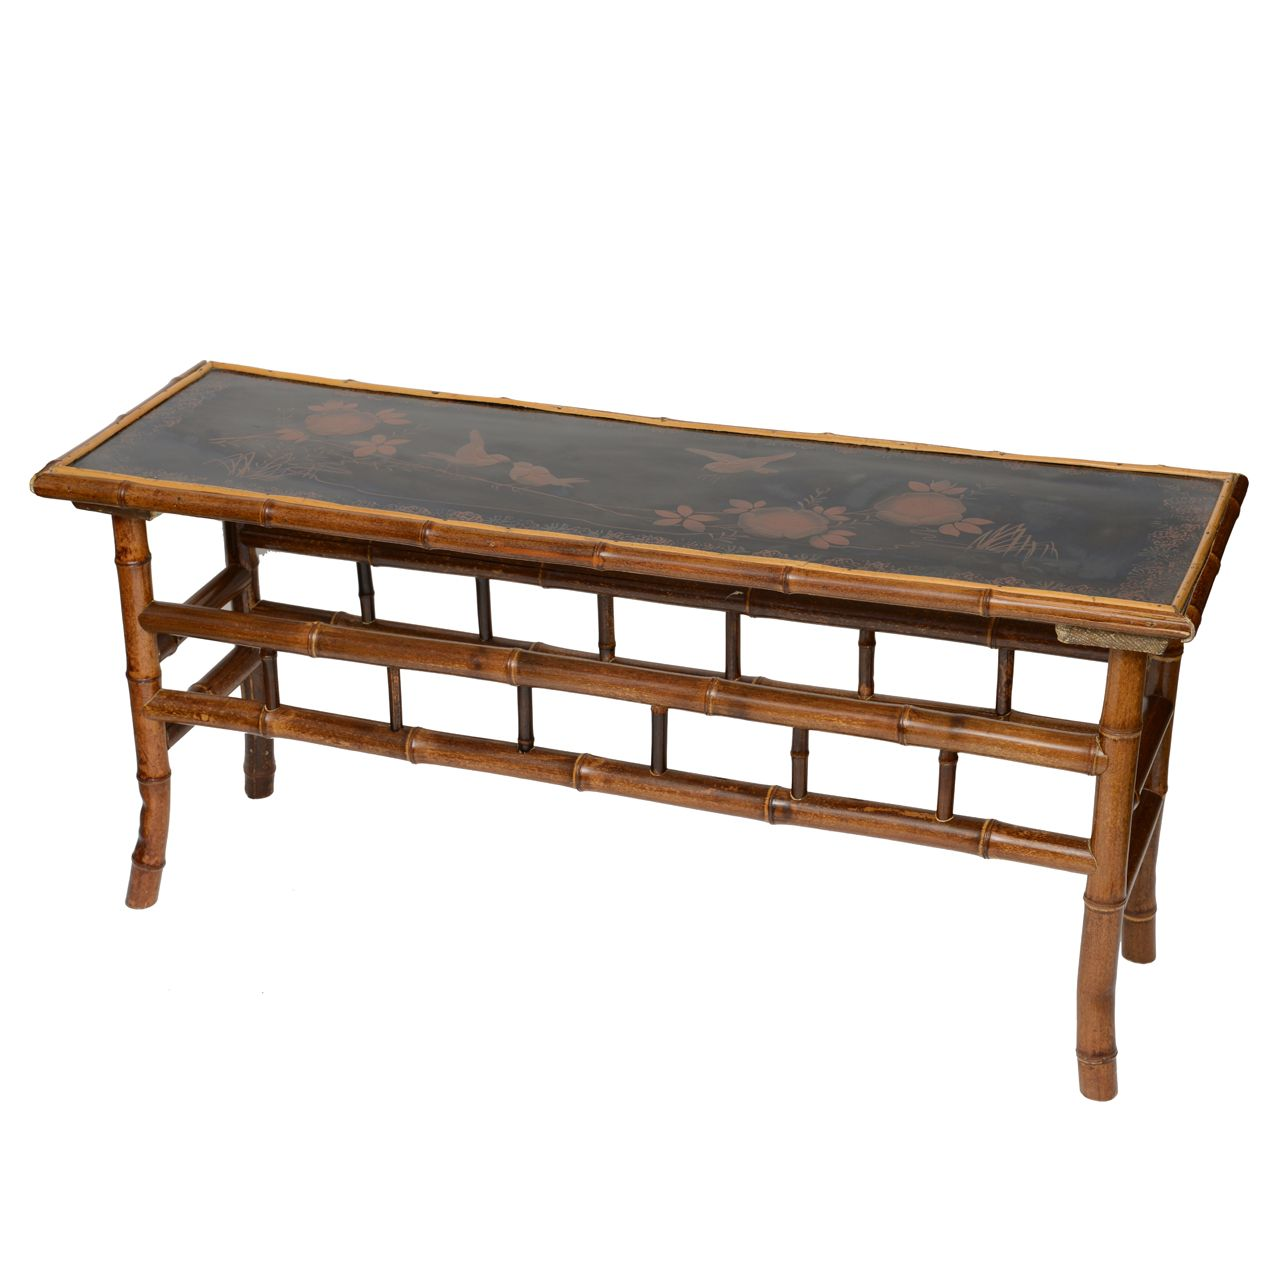 19th C English Bamboo Low Coffee Table From A Unique Collection Of Antique And Modern Coffee And Cocktail Tab Low Coffee Table Bamboo Furniture Coffee Table